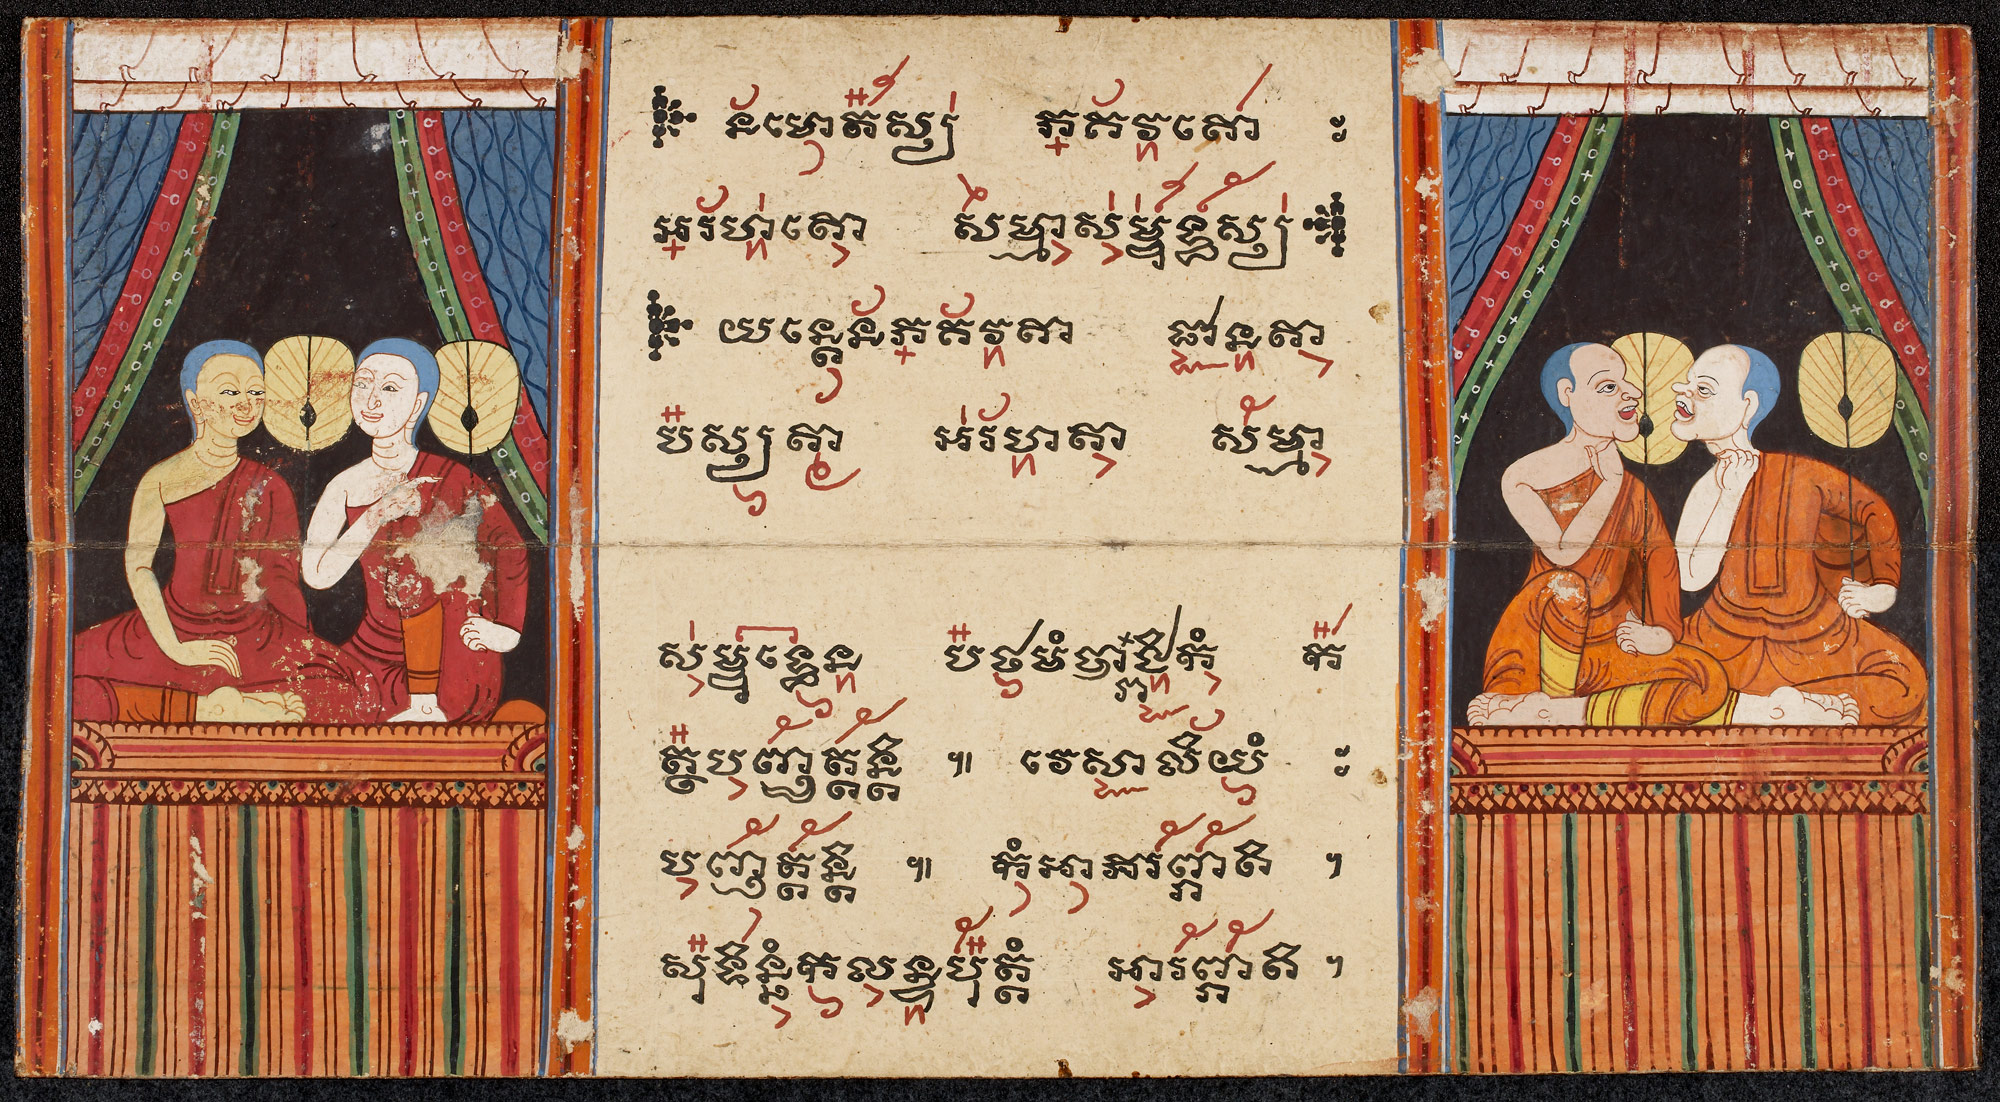 Extracts from the Tipitaka